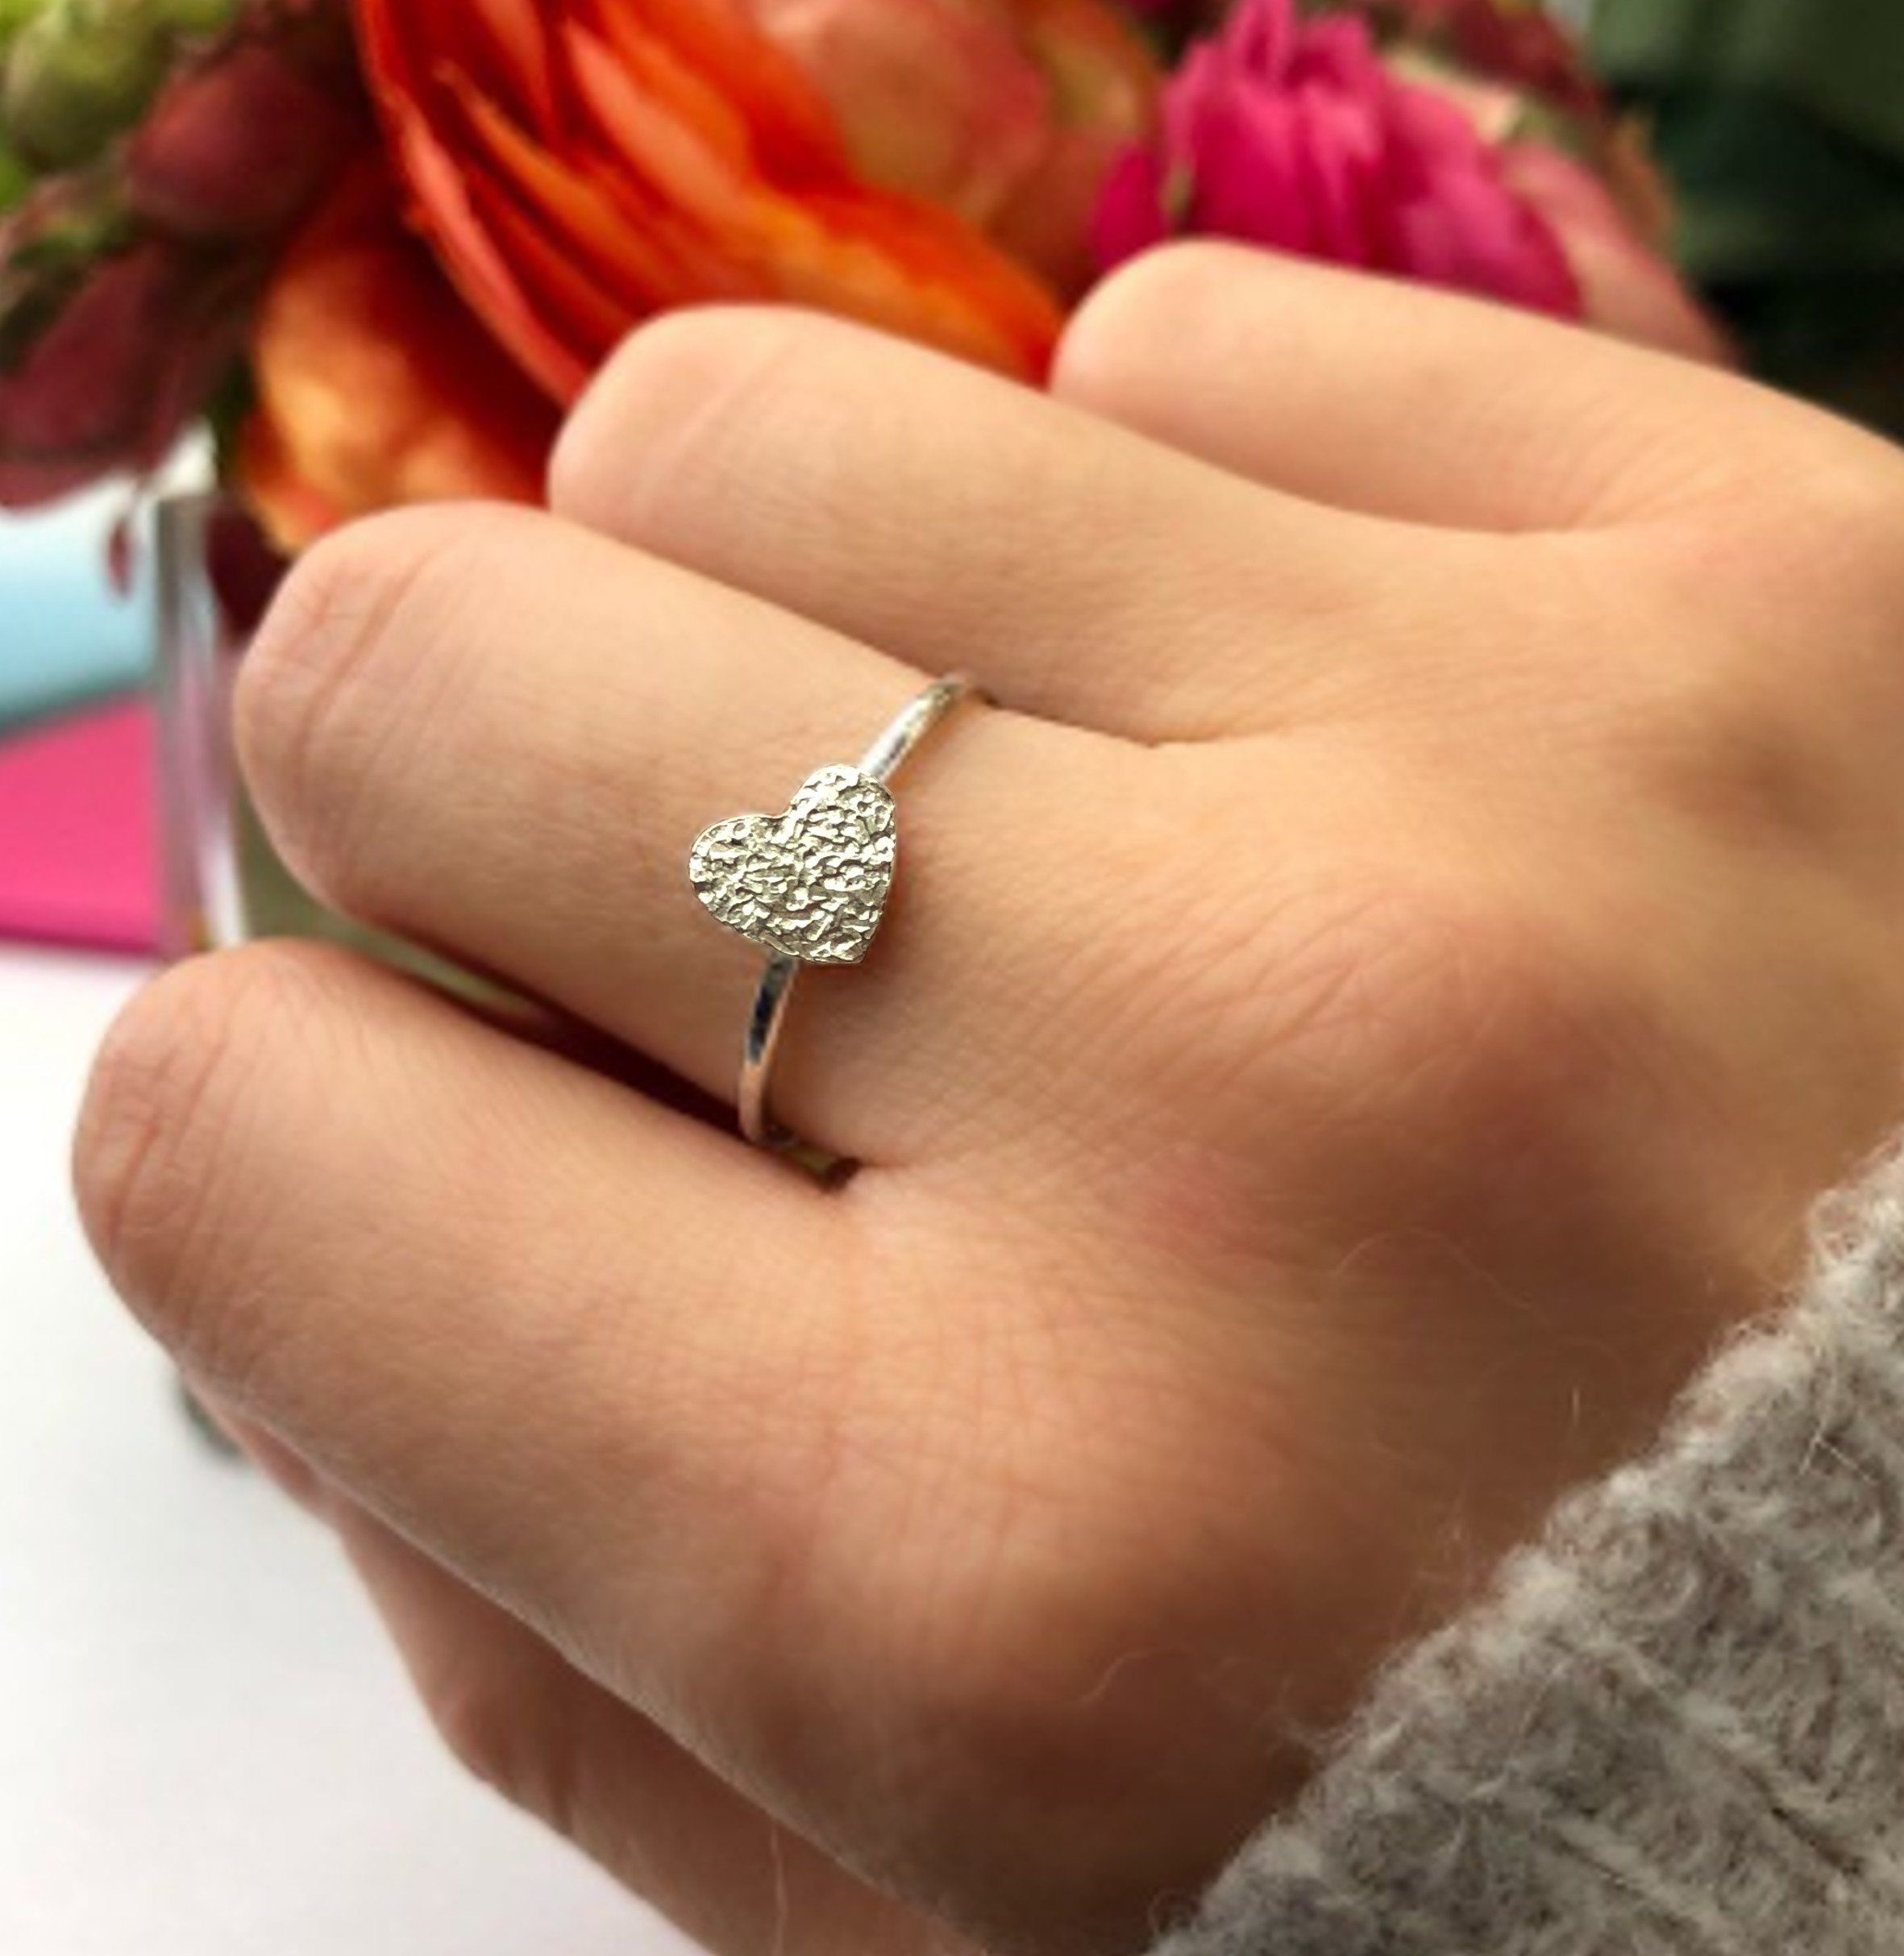 The silver textured heart ring includes:* Ring band thickness: 1.2mm (approx)* Silver heart: 7mm x 7mm* Handmade in sterling silver * White gift box and gift card choice.